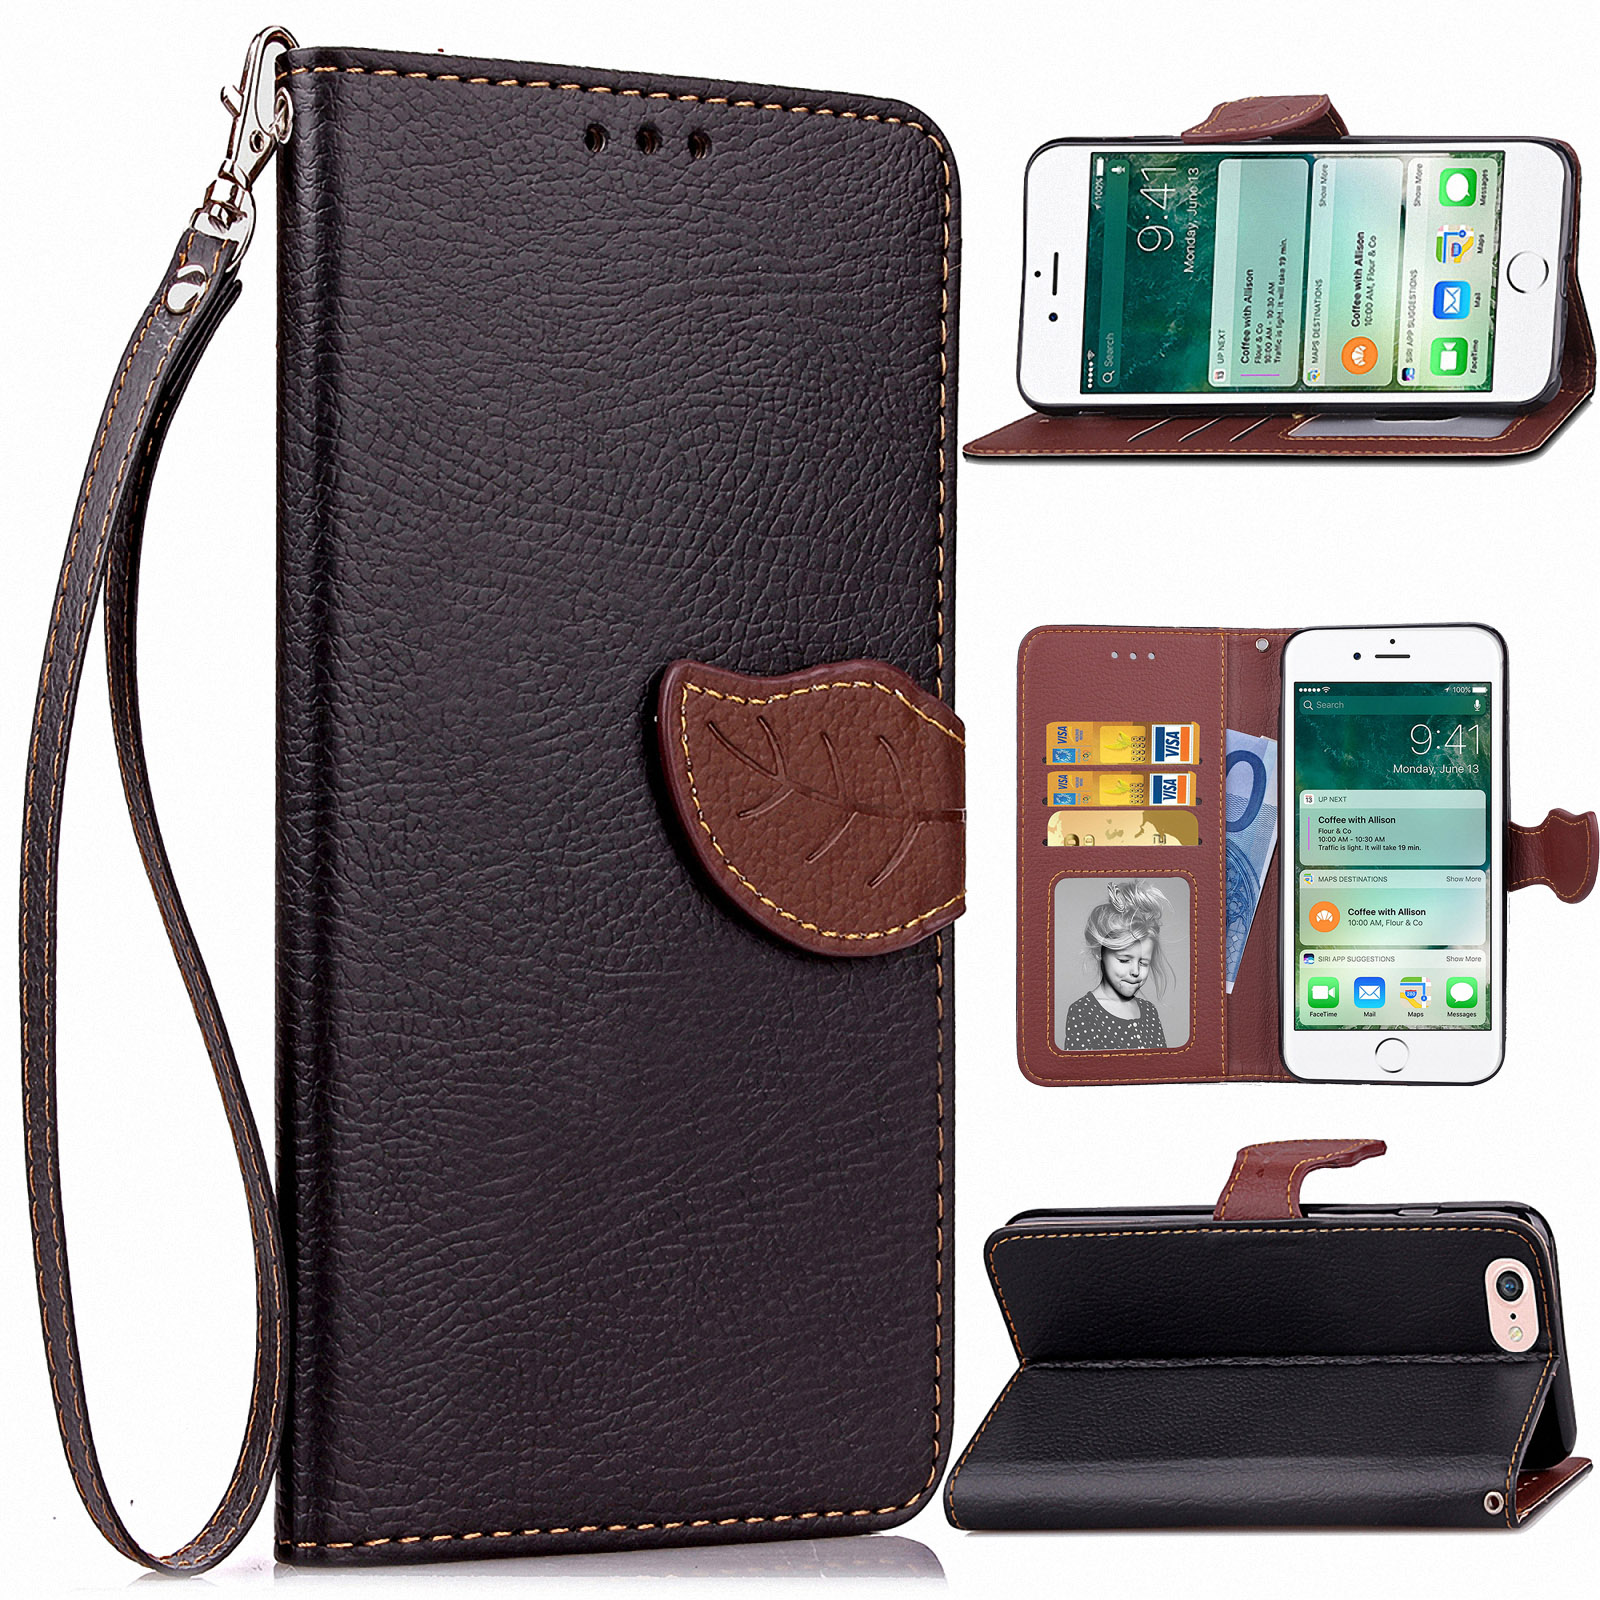 Credit Card Holder For Iphone  Plus